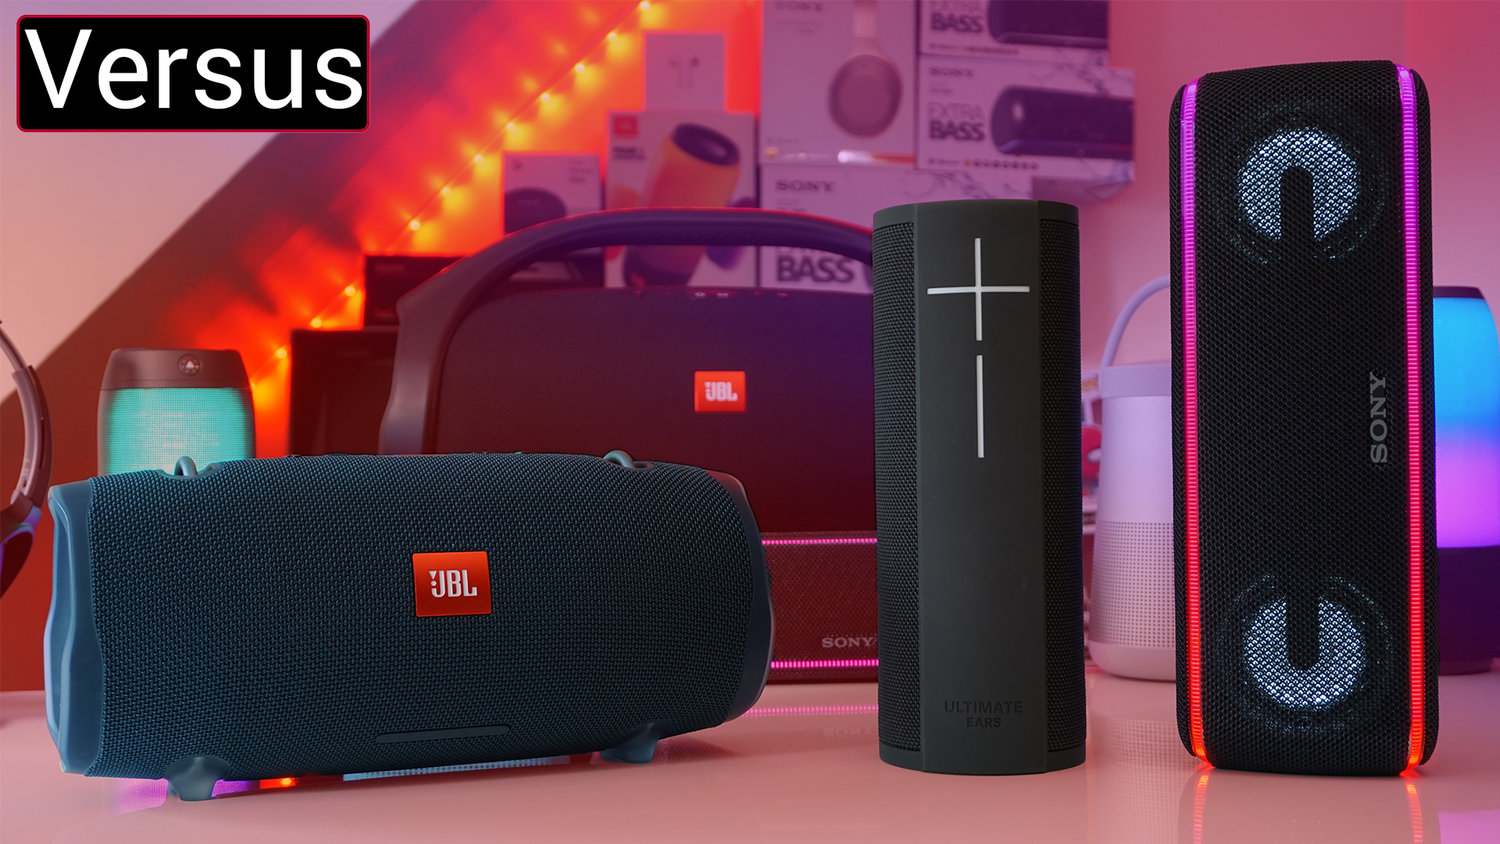 Revisiting The UE MEGABLAST & Comparing It To JBL Xtreme 2 & Sony